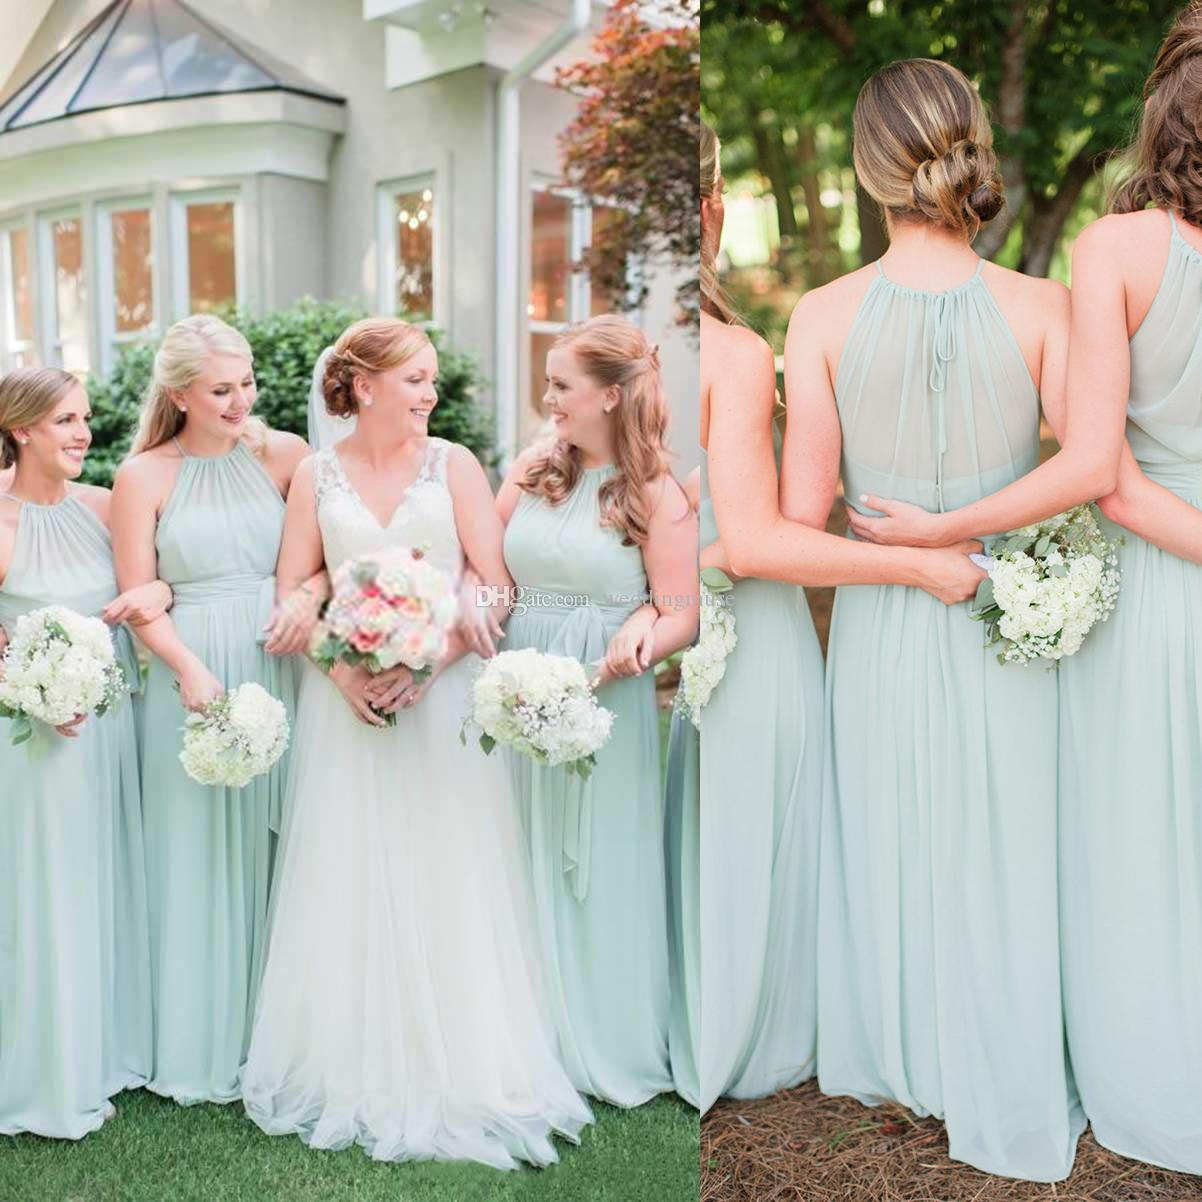 dfbb8269a2b97 Elegant Bridesmaid Dresses Sage Green Chiffon Ruffles Long Floor Length  Open Back Boho Country Wedding Party Maid of Honor Gowns Formal